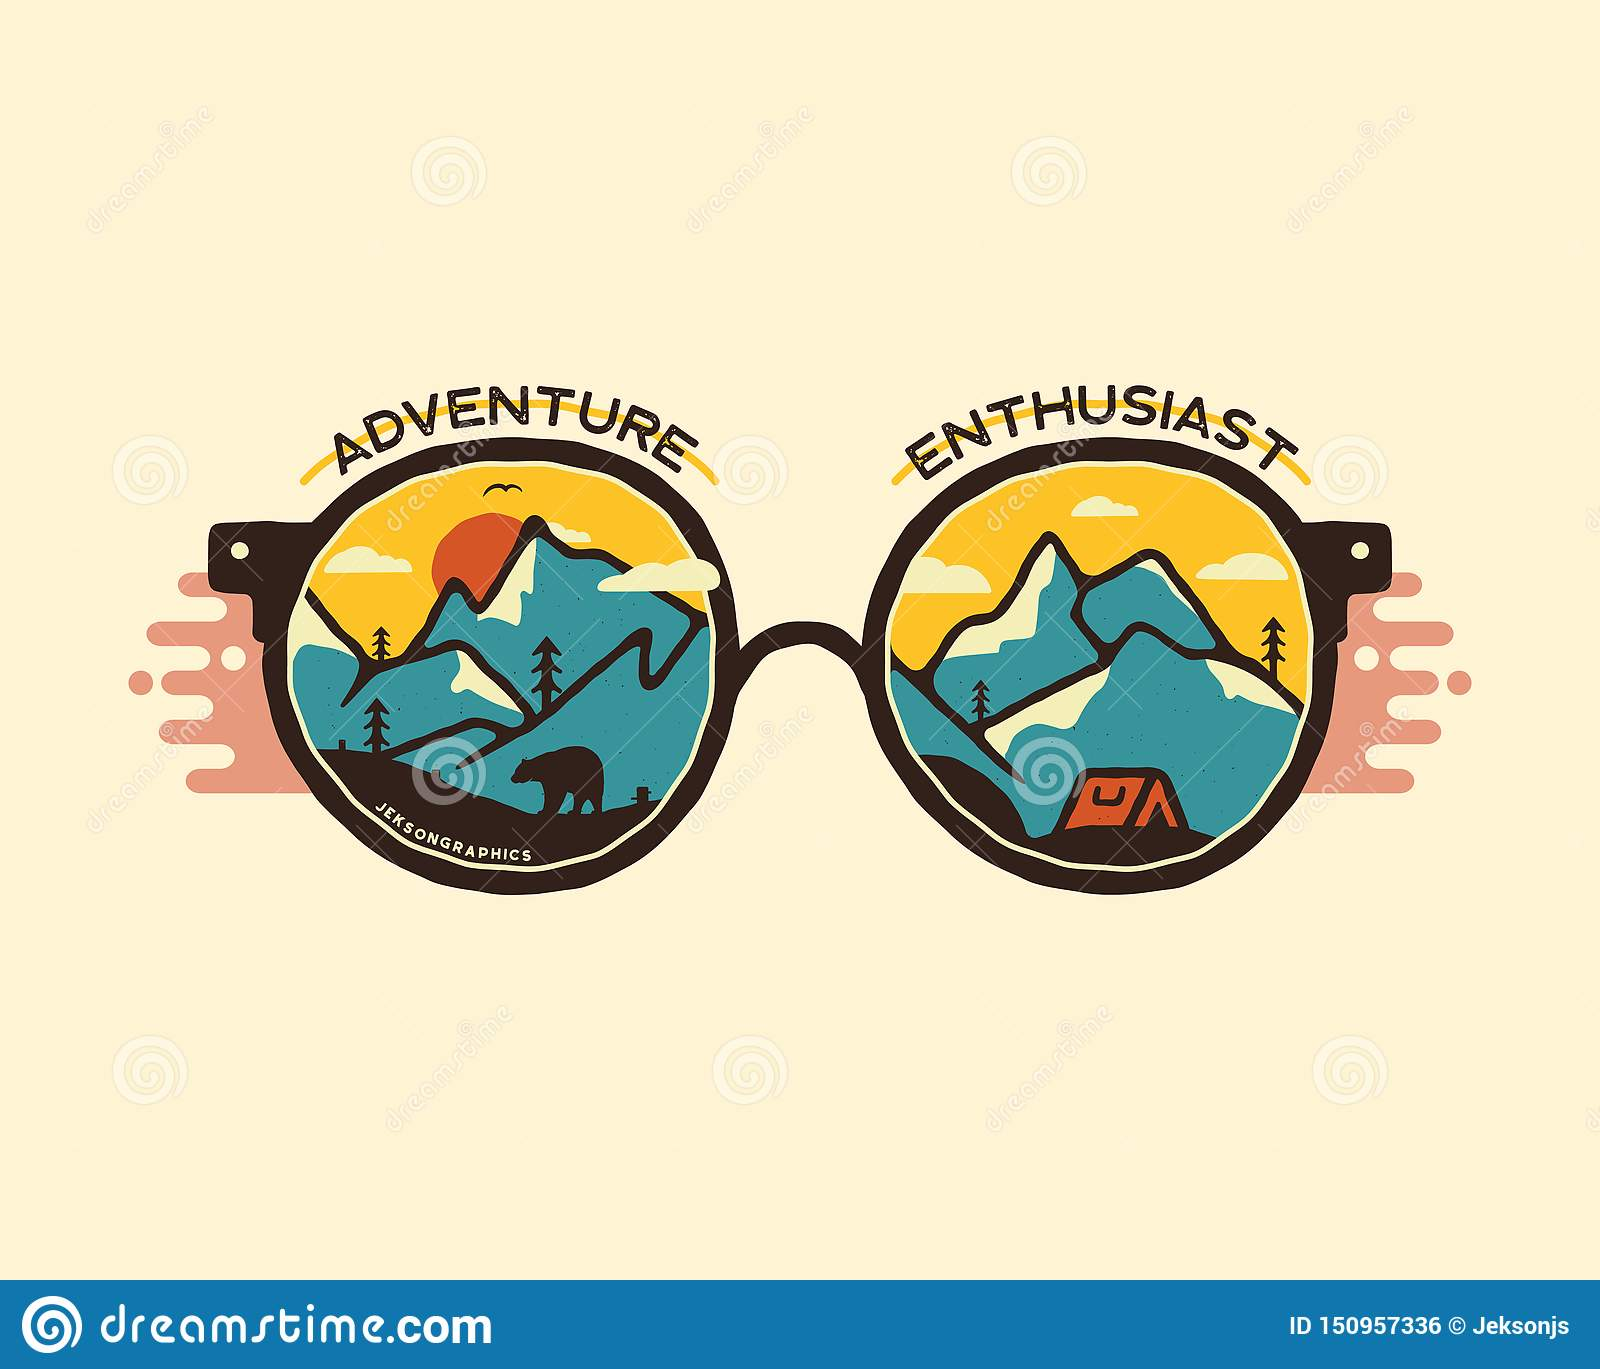 Camping badge illustration design. Outdoor logo with quote - Adventure enthusiast, for t shirt. Included retro mountains